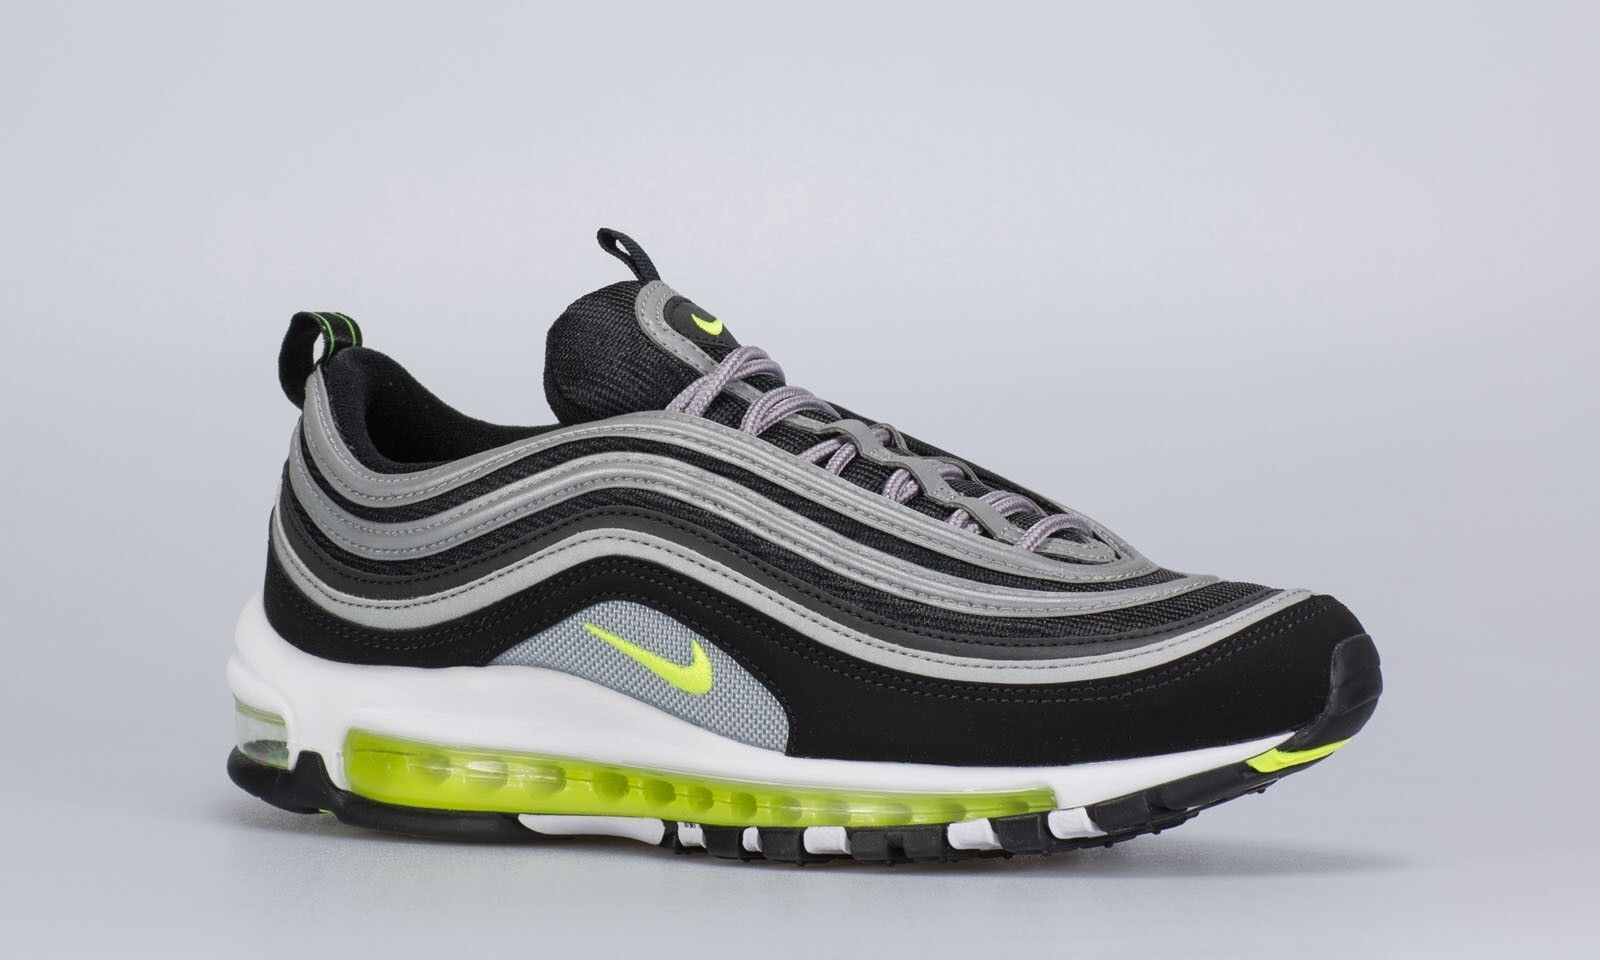 2017 Nike Air Max 97 Japan Black OG Black Japan Volt Size 12. 921826-004 90 95 1 vapormax c0efde